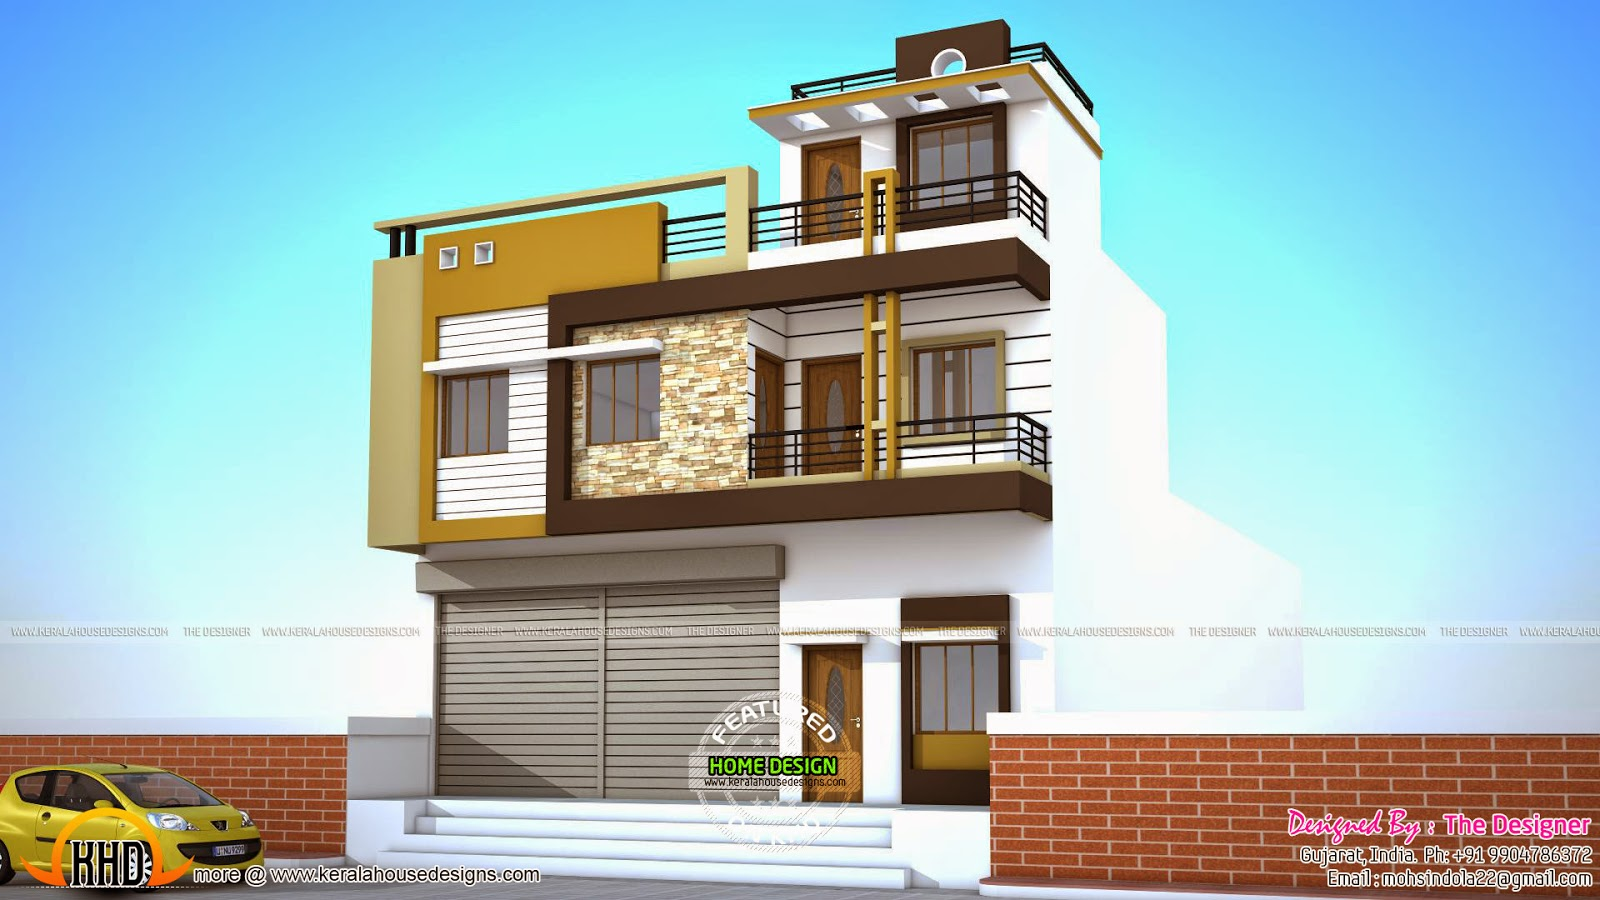 2 House Plans With Shops On Ground Floor Kerala Home